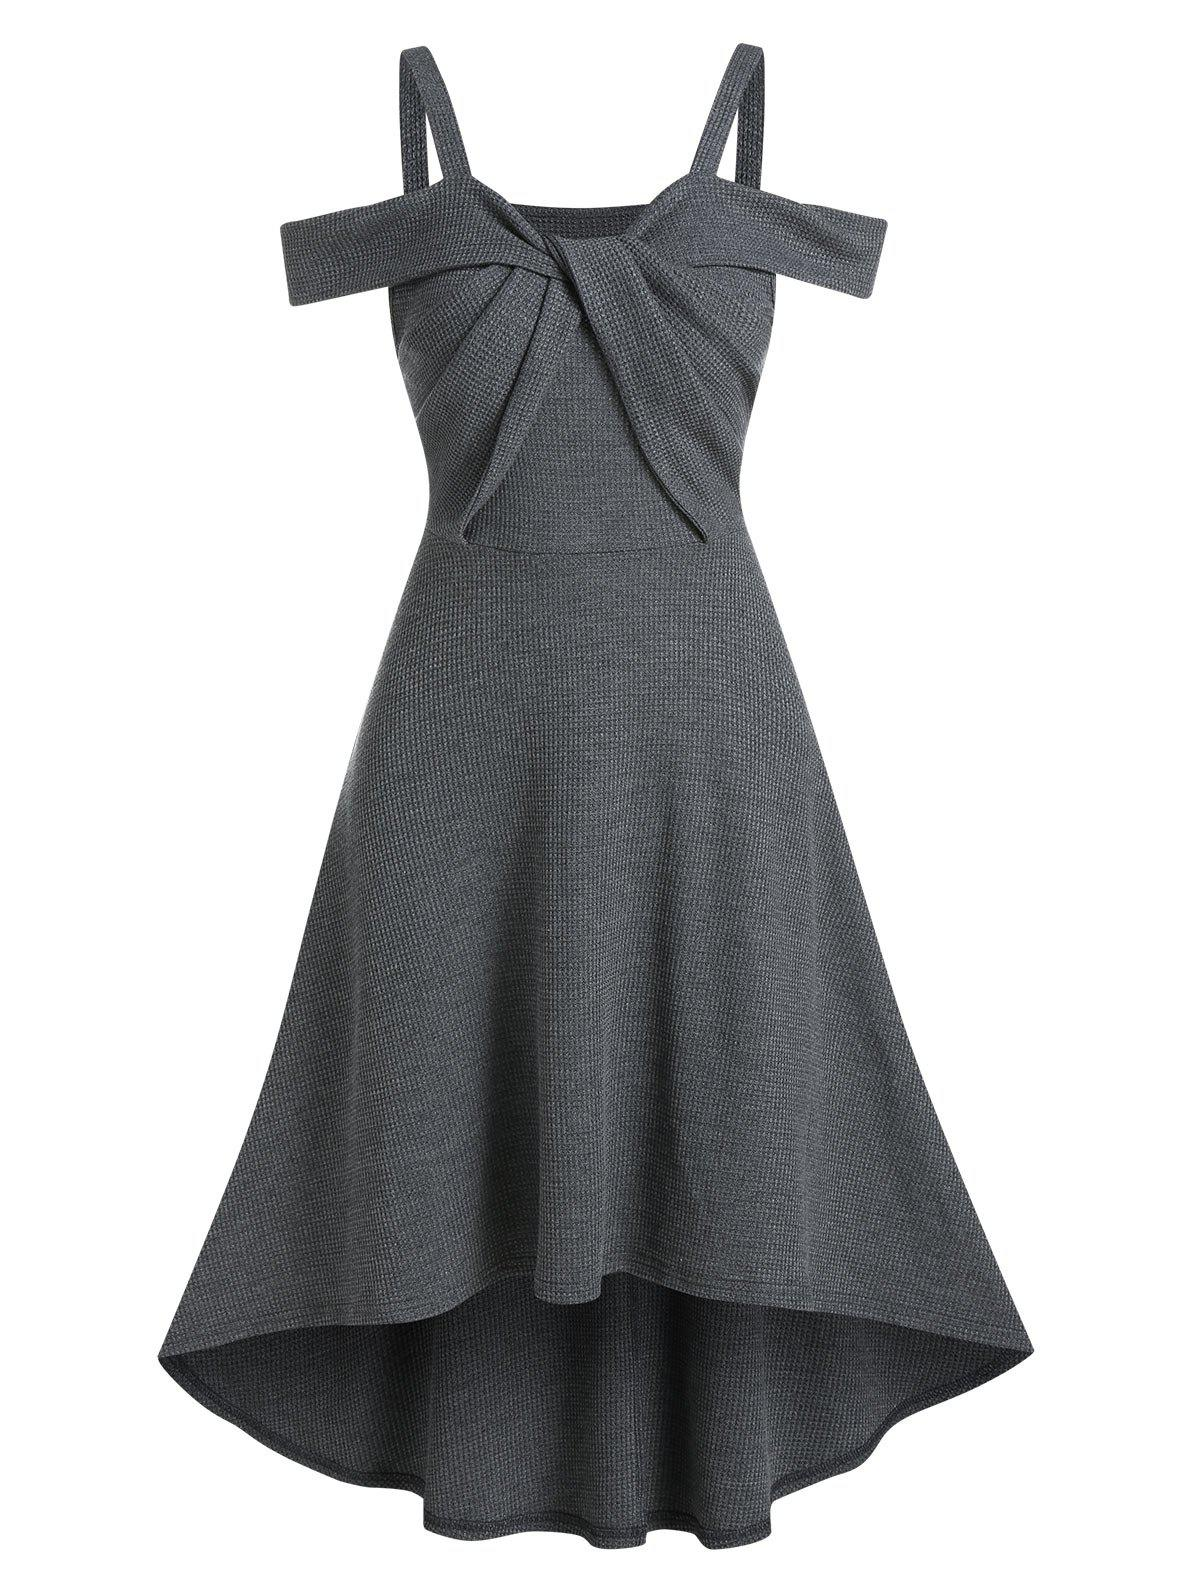 Front Twist Open Shoulder High Waist Dip Hem Dress - GRAY L